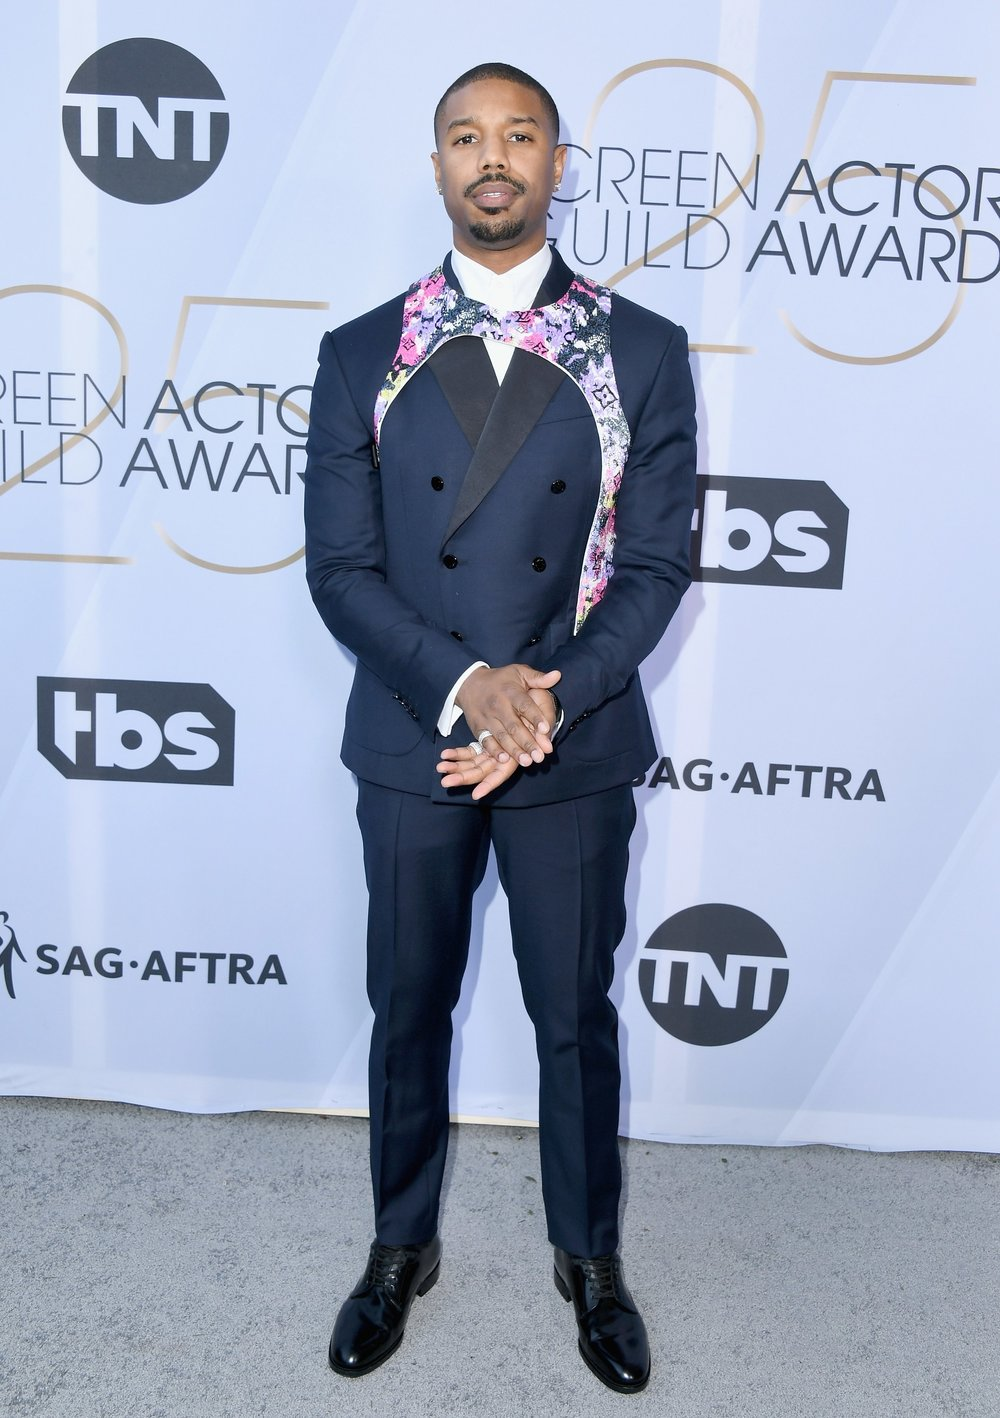 SAG AWARDS 2019 RED CARPET MICHAEL B JORDAN.jpg